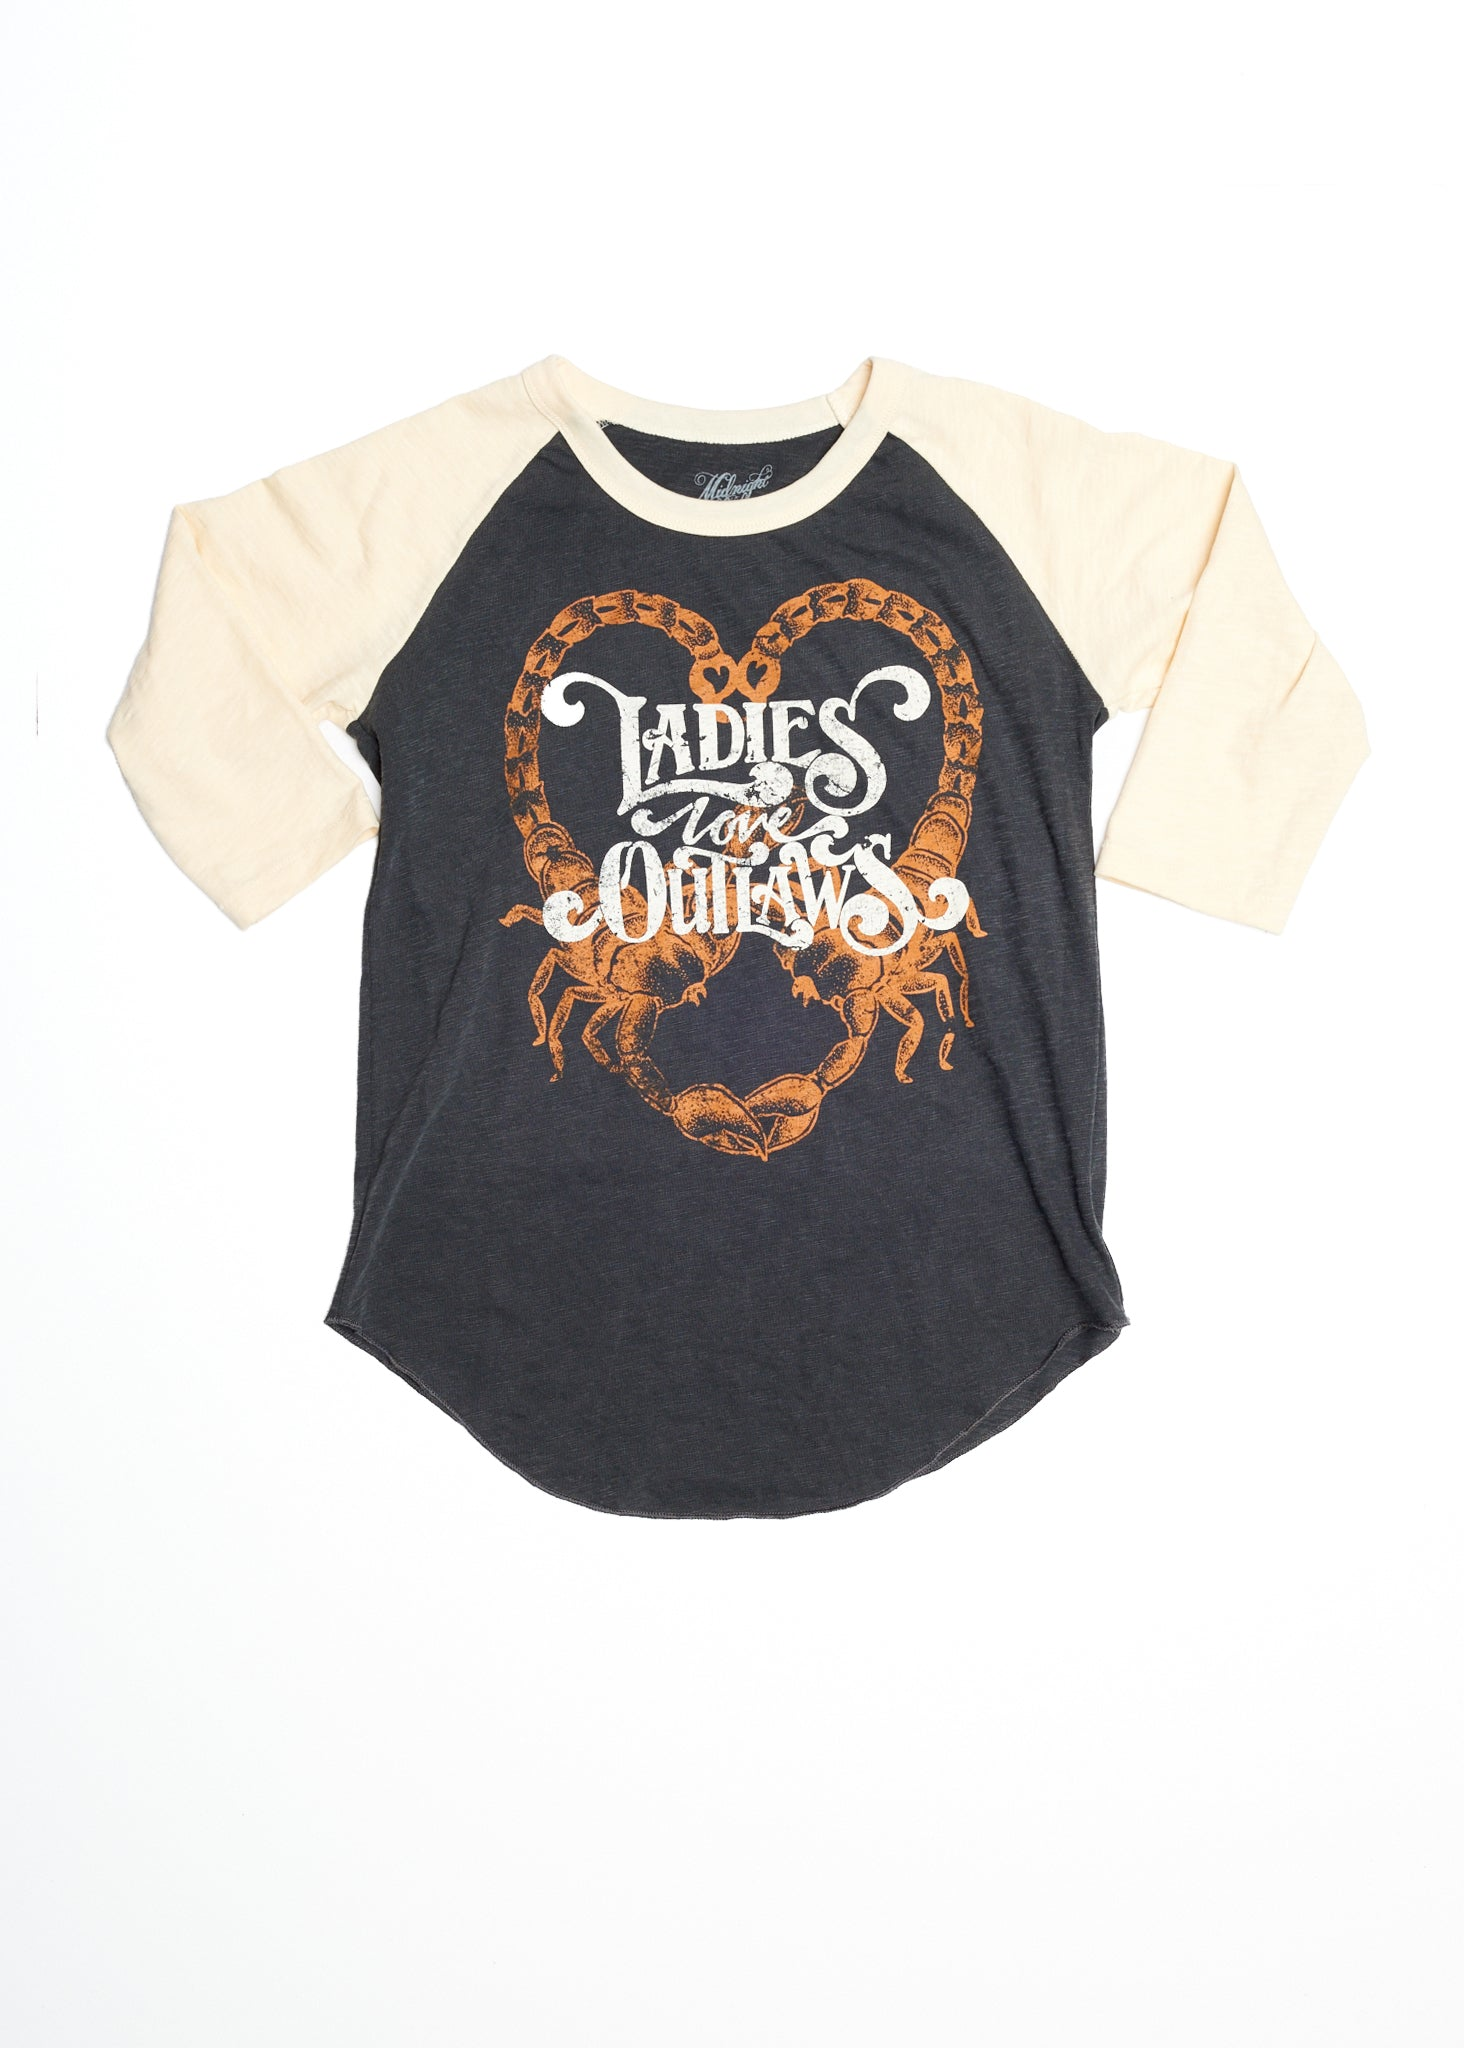 Ladies Love Outlaws Baseball Tee - Baseball Tee - Midnight Rider